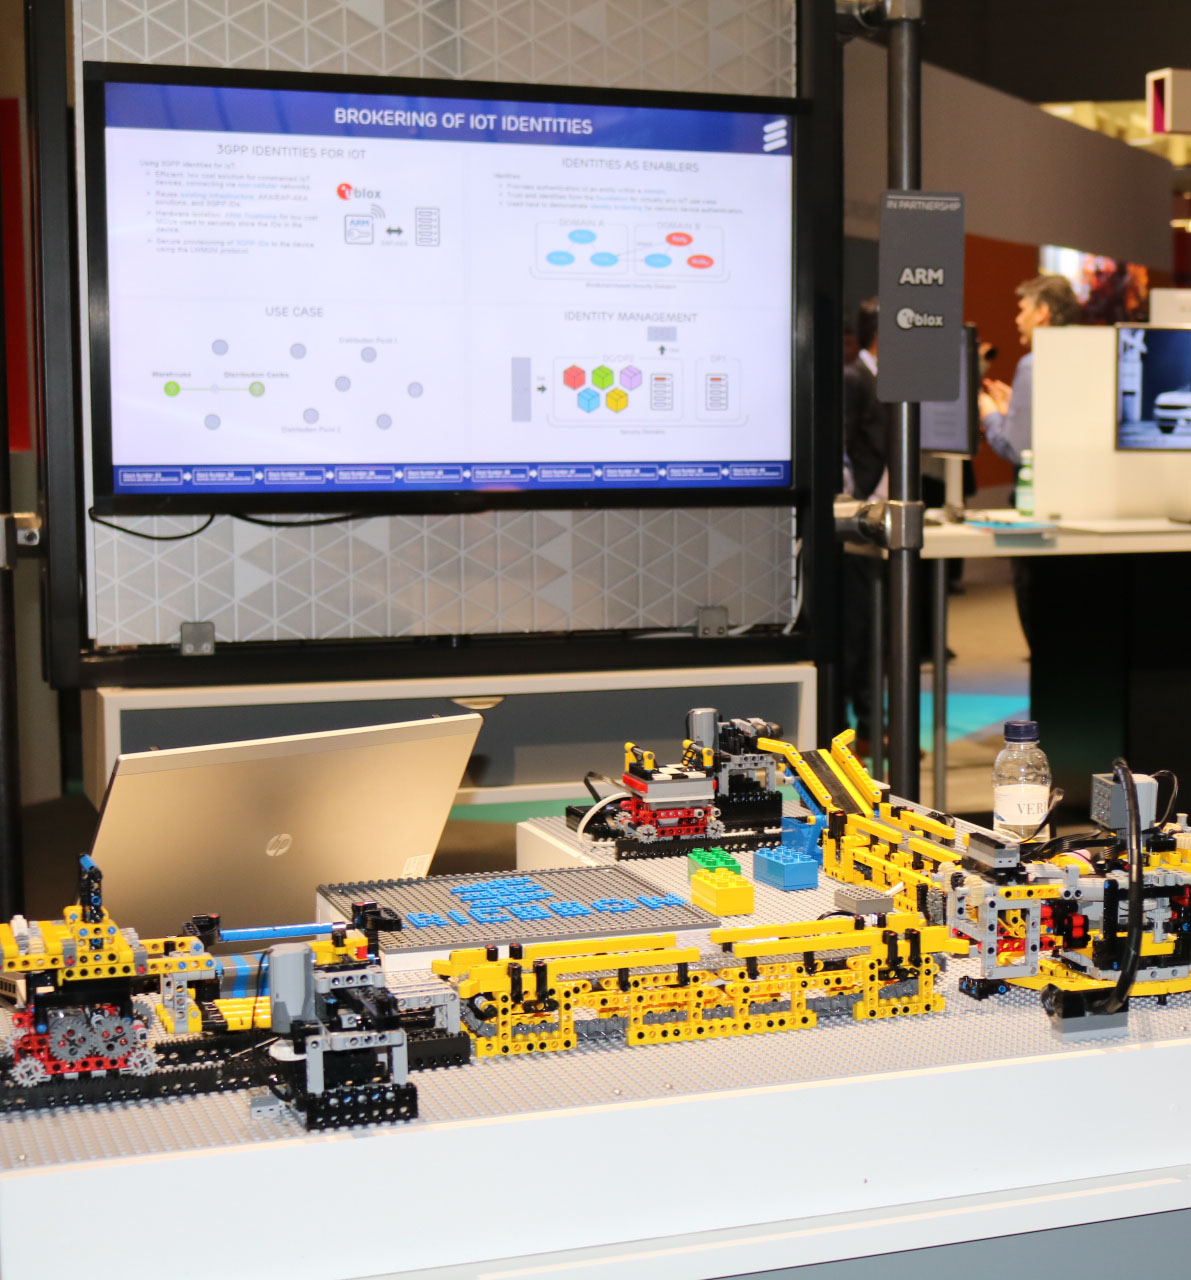 Brokering IoT dependencies with Lego